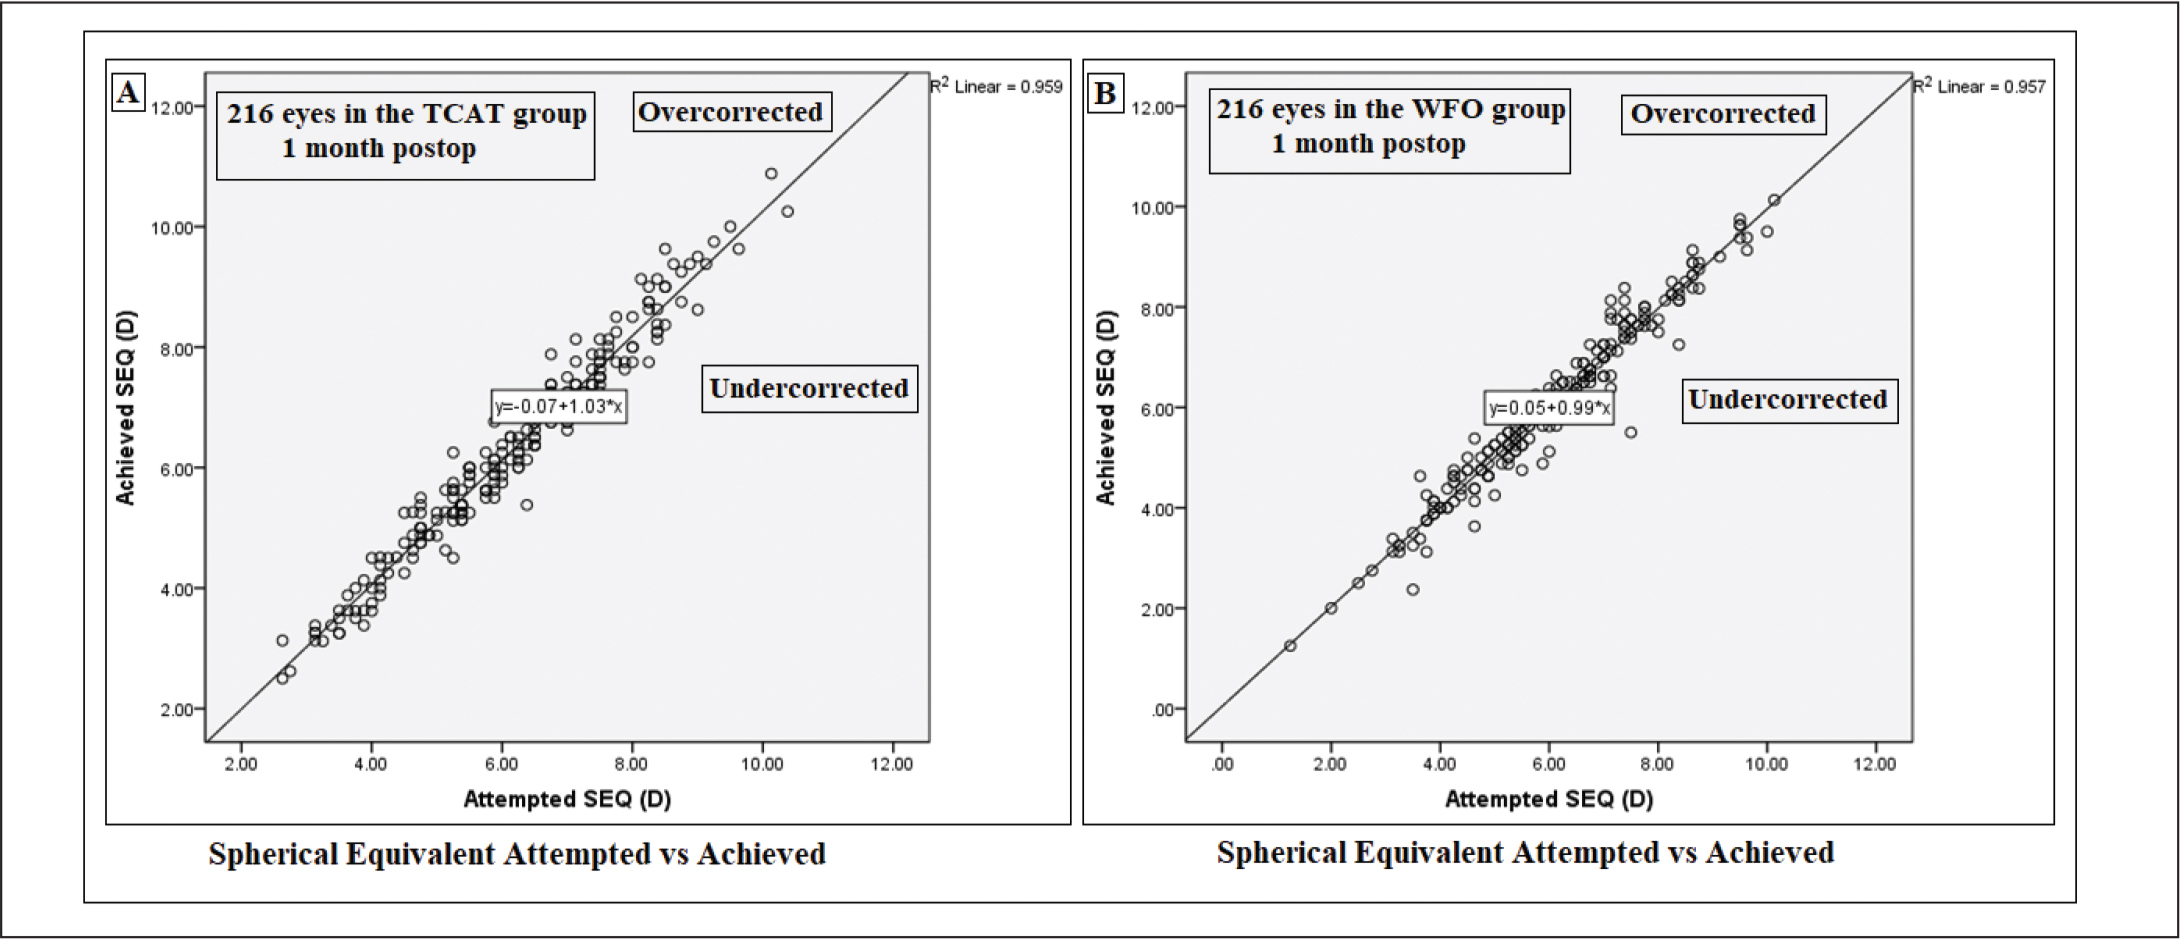 Attempted versus achieved spherical equivalent (SEQ) in the form of a scatter plot 1 month after surgery in the (A) topography-guided customized ablation treatment (TCAT) group and (B) wavefront-optimized (WFO) ablation group.